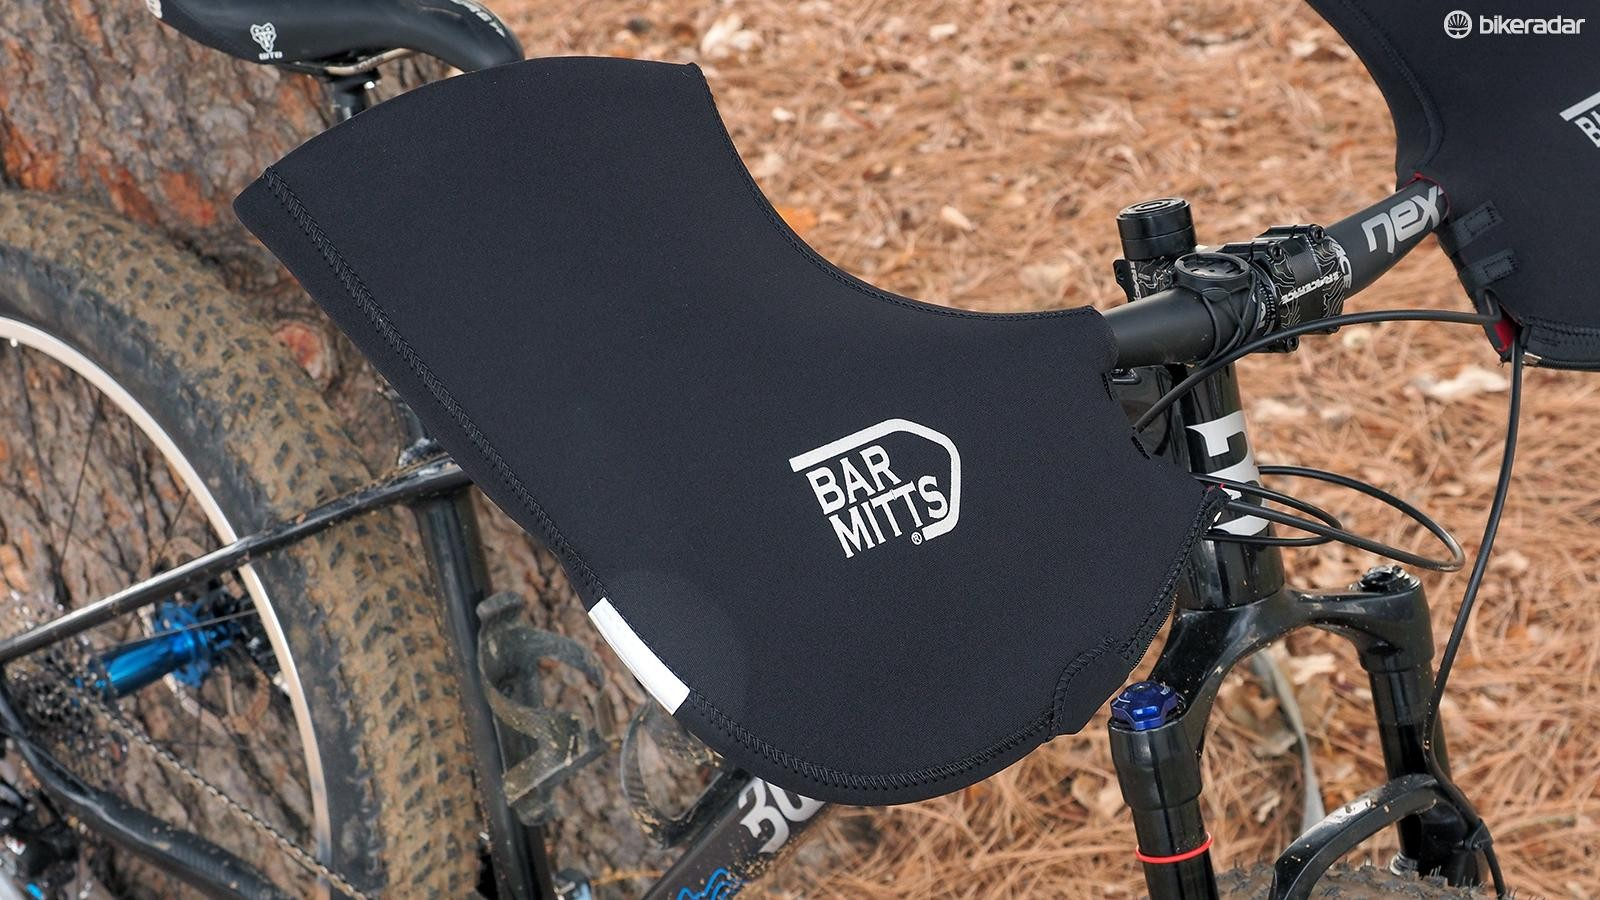 When it comes to keeping your hands warm in super cold temperatures, there's nothing better than Bar Mitts and similar products that wrap the entire handlebar grip area